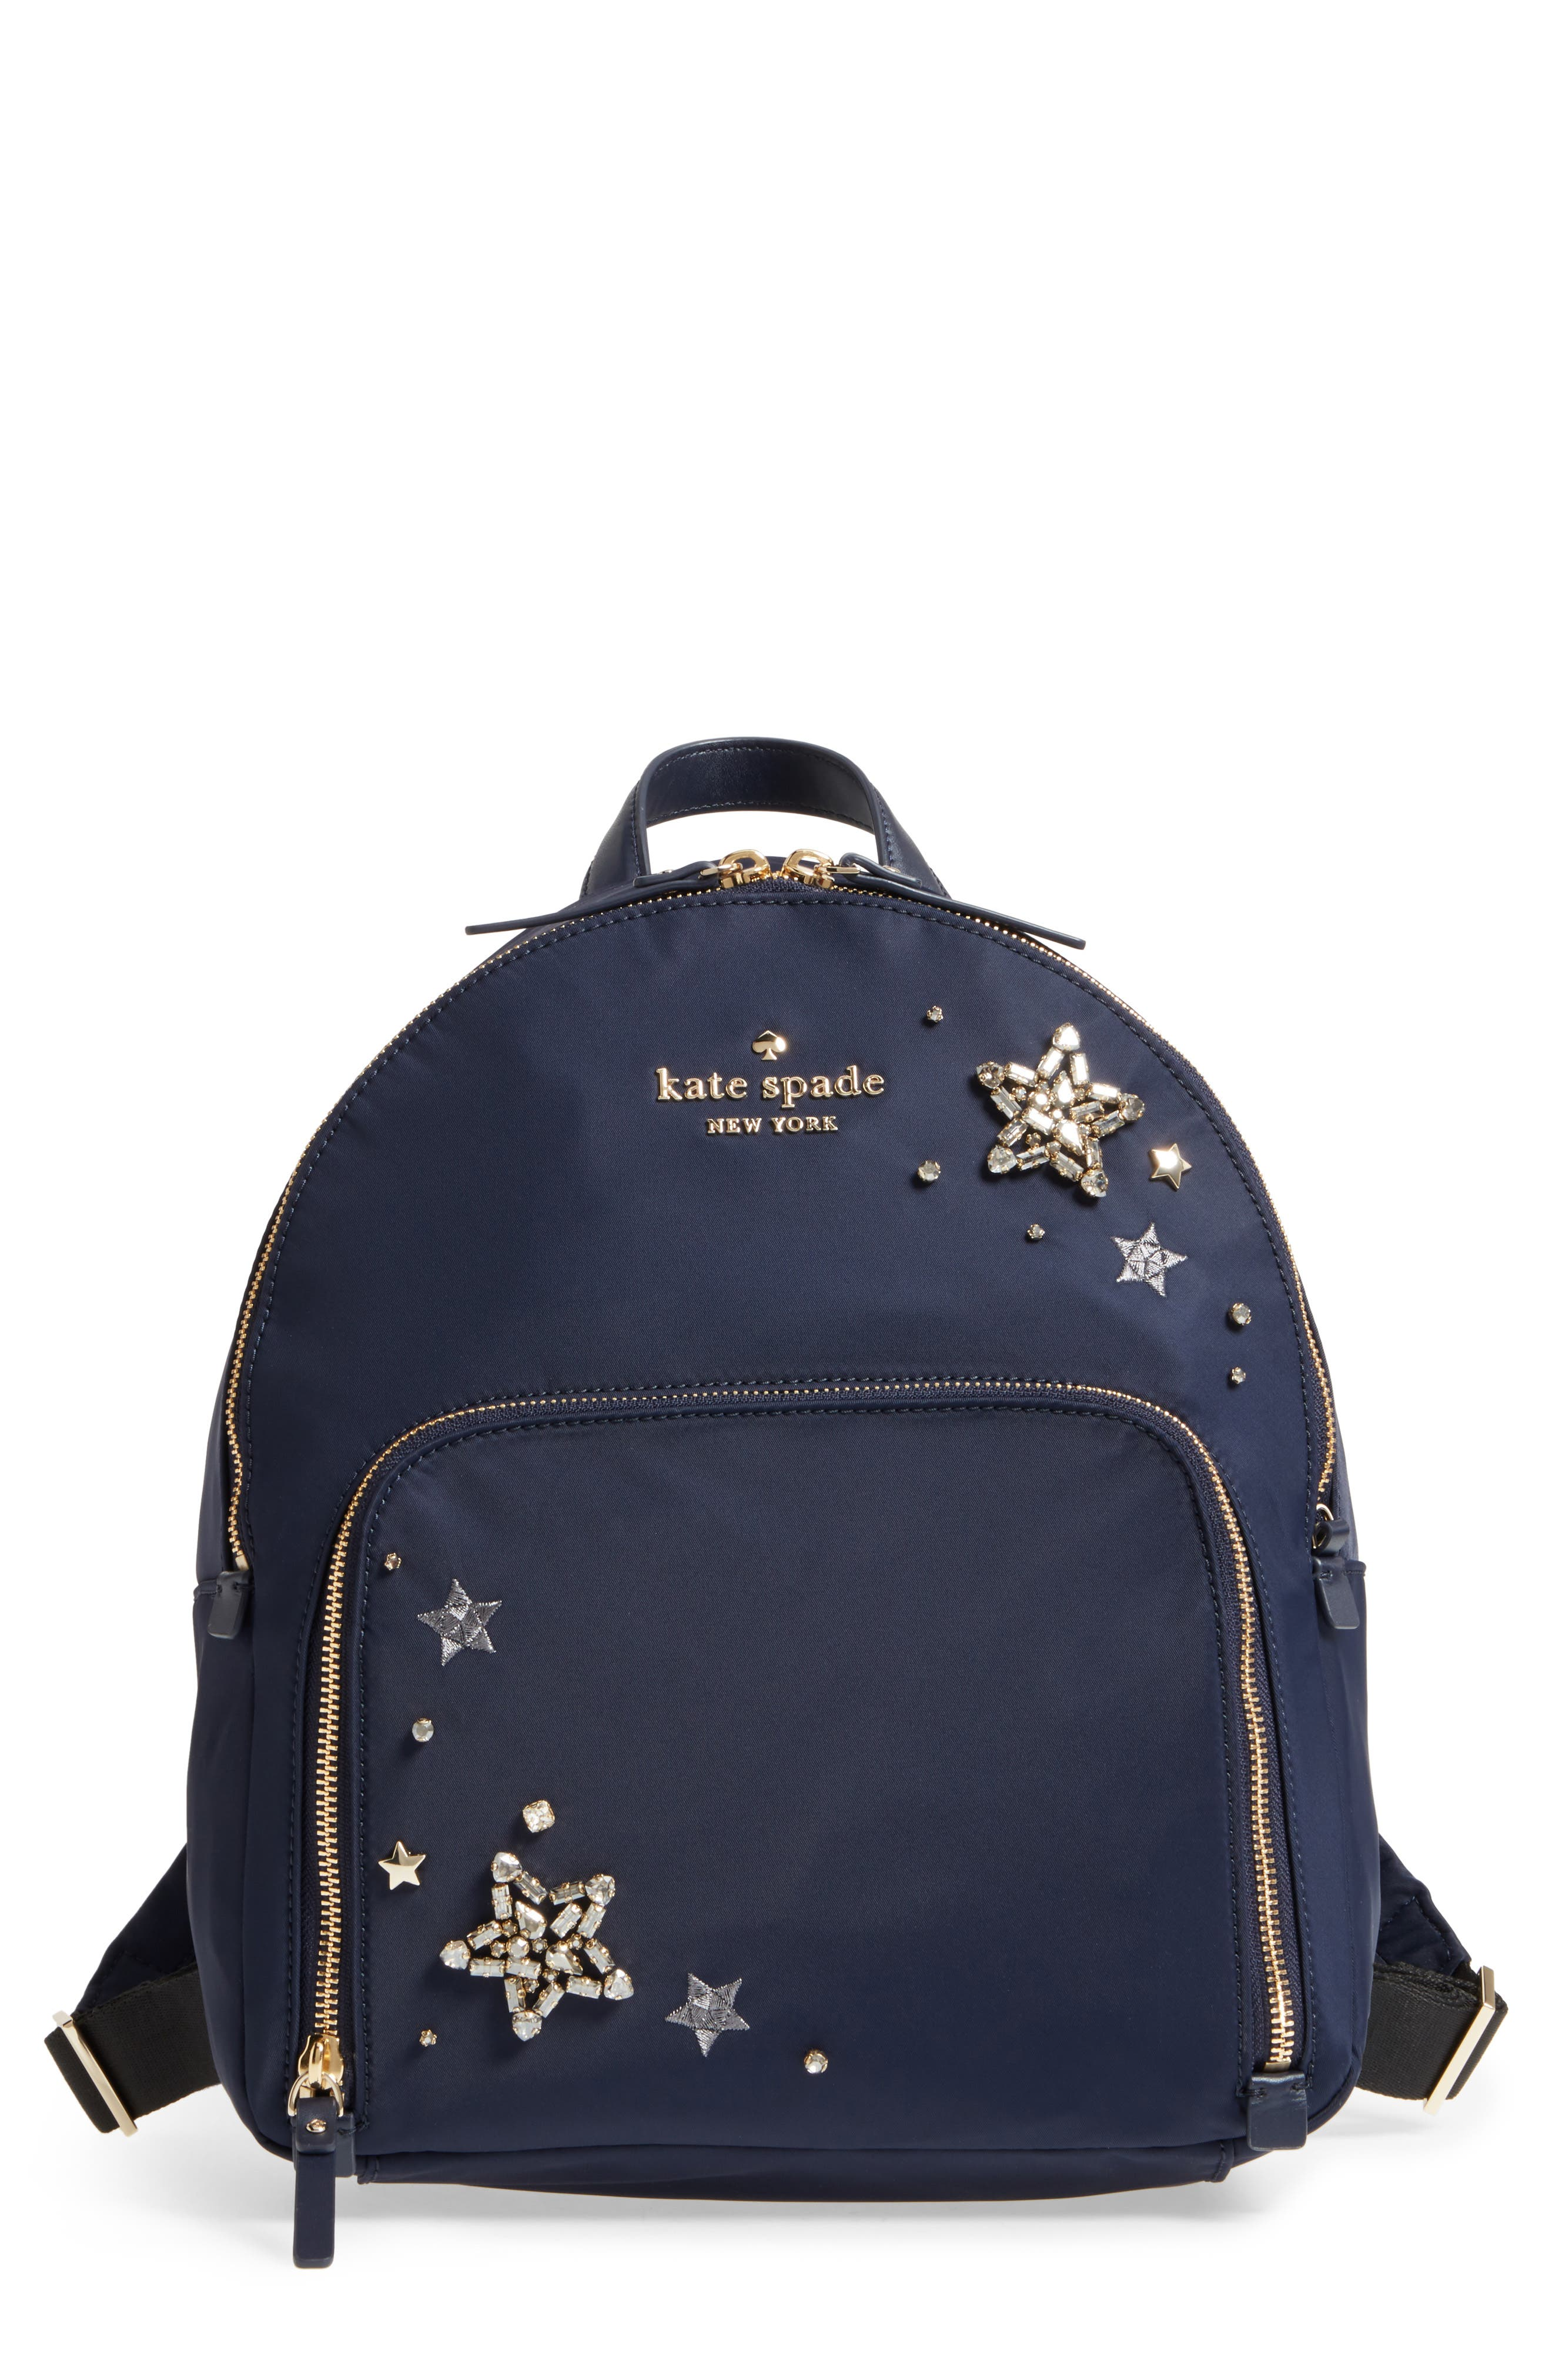 kate spade new york watson lane - hartley embellished nylon backpack